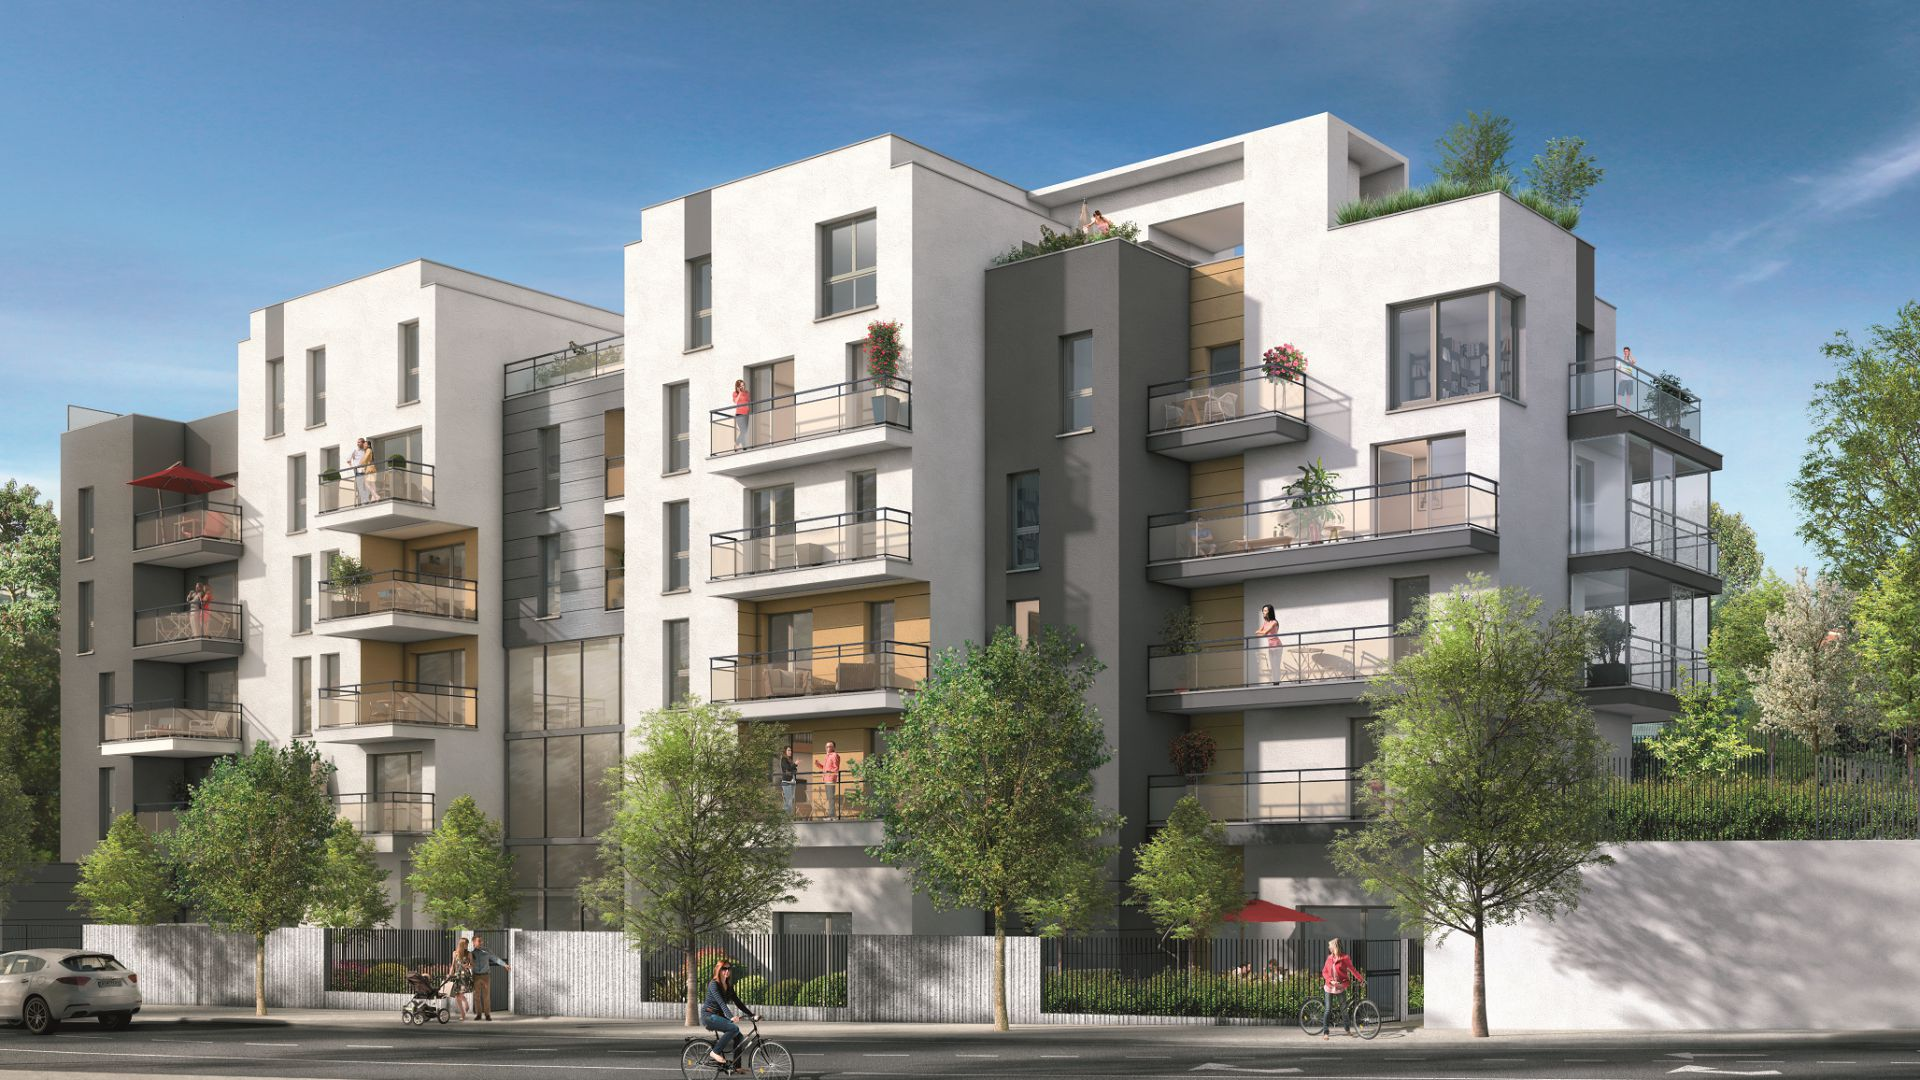 Residence gabriel green city immobilier for Residence immobilier